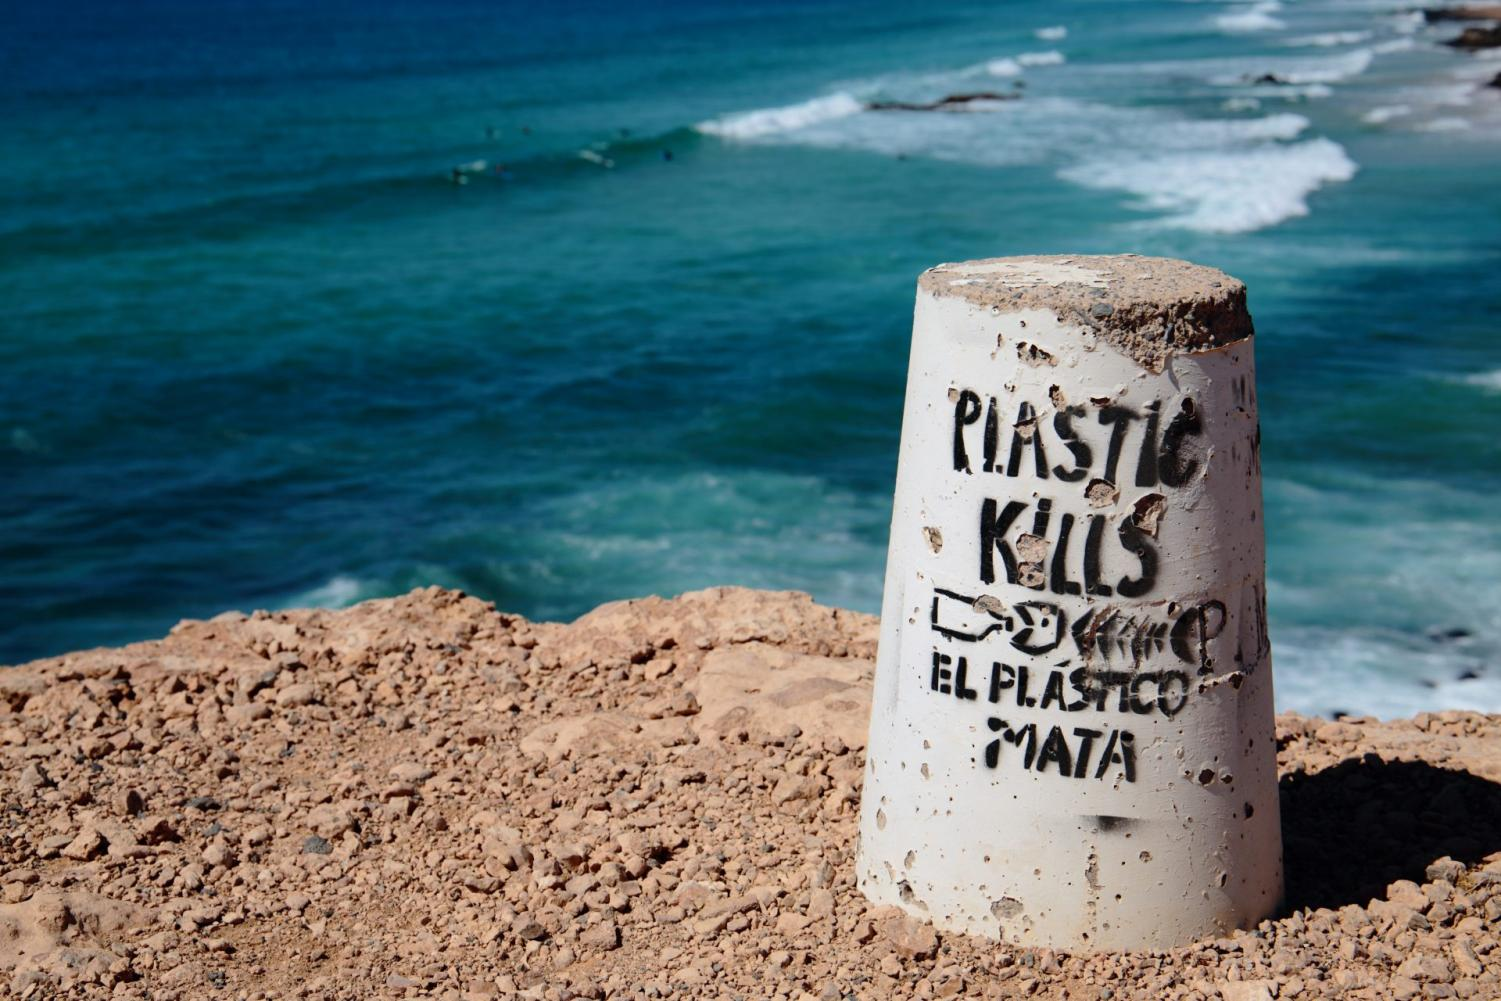 This April 6, 2018 photo shows an anti-pollution message in Fuerteventura, the second-largest of the seven Canary Islands. Experts say chemical pollution from farming and industrial runoff poses an even greater threat than plastics.